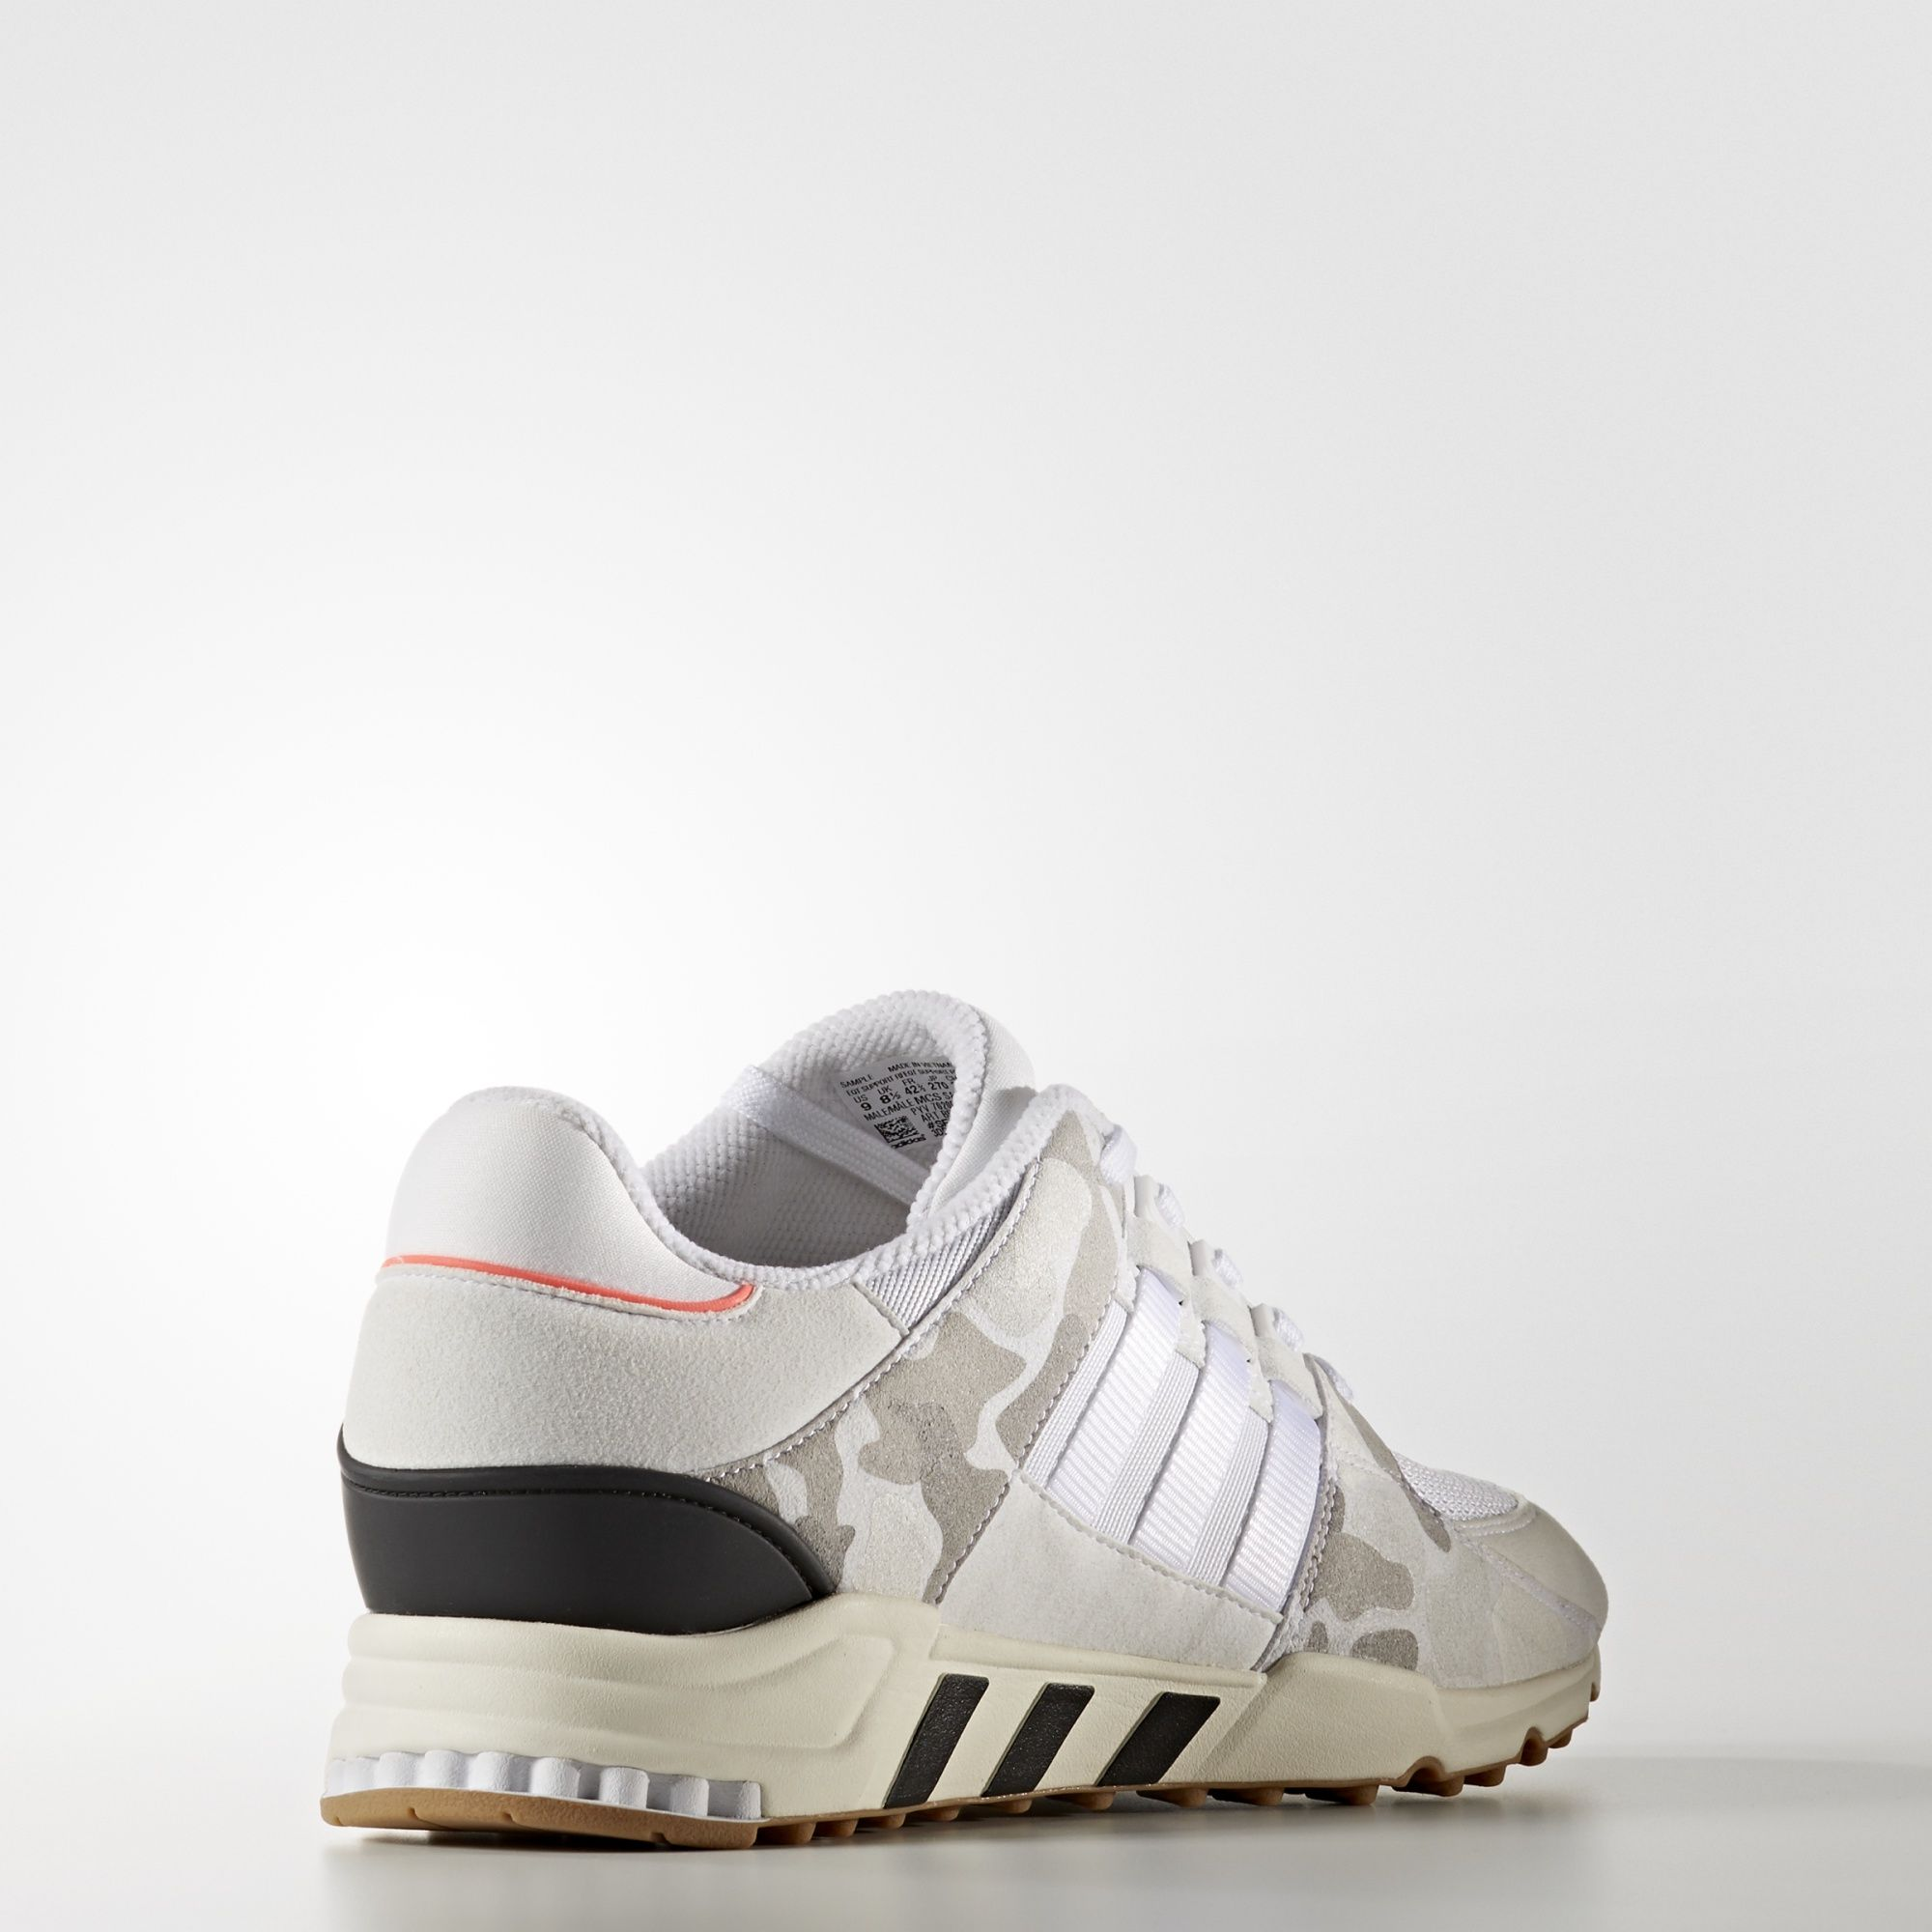 adidas EQT Support RF White Camo BB1995 3